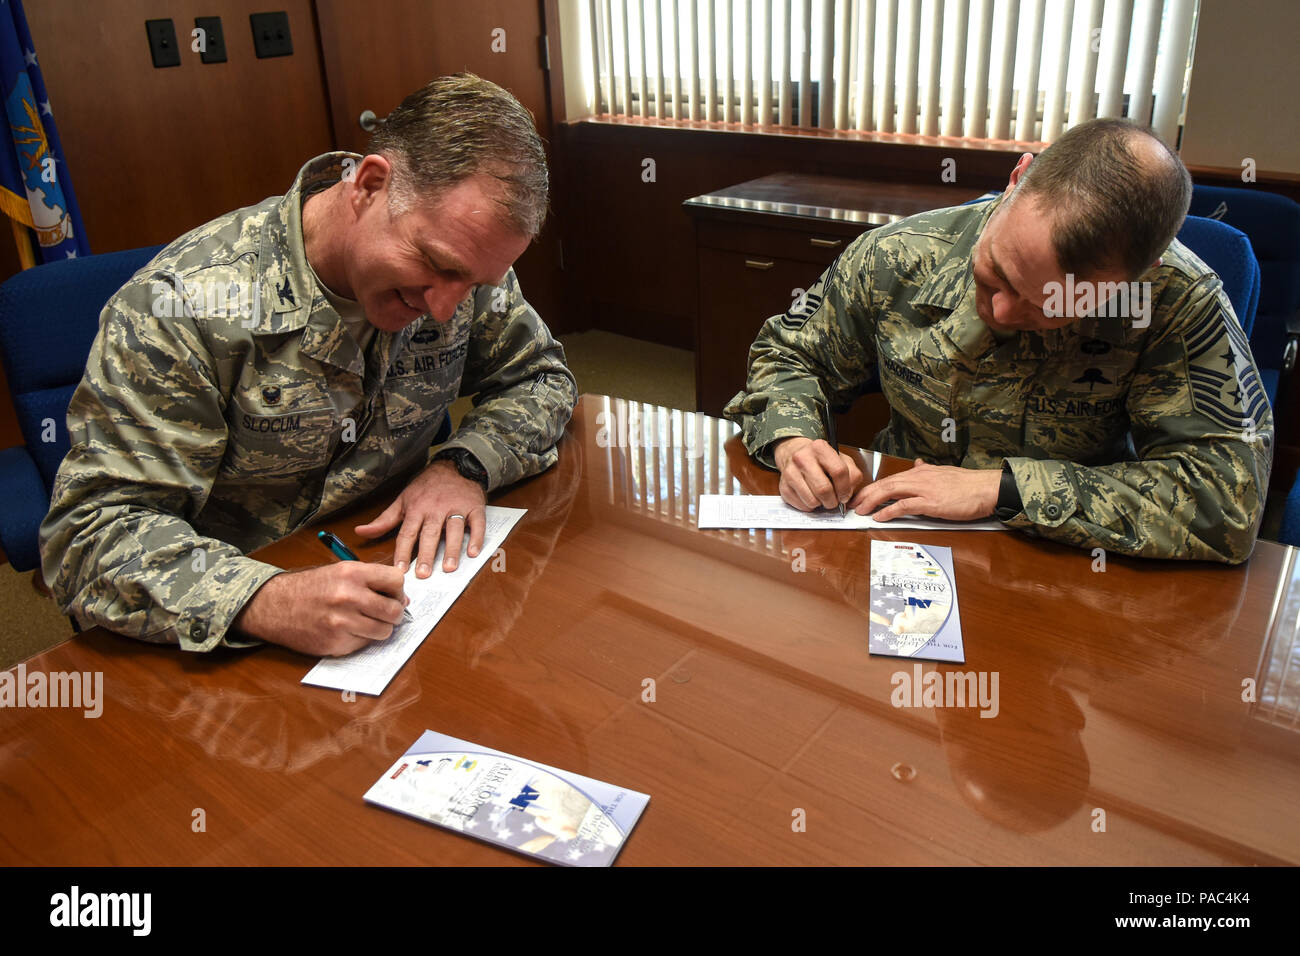 Col. Mark Slocum (left), 4th Fighter Wing commander, and Chief Master Sgt. Shane Wagner, 4th FW command chief, fill out donations slips for the 2016 Air Force Assistance Fund, March 3, 2016, at Seymour Johnson Air Force Base, N.C. The AFAF campaign began Feb. 29 and ends April 8 with a goal of raising $100,000. (U.S. Air Force photo/Airman Shawna L. Keyes) - Stock Image